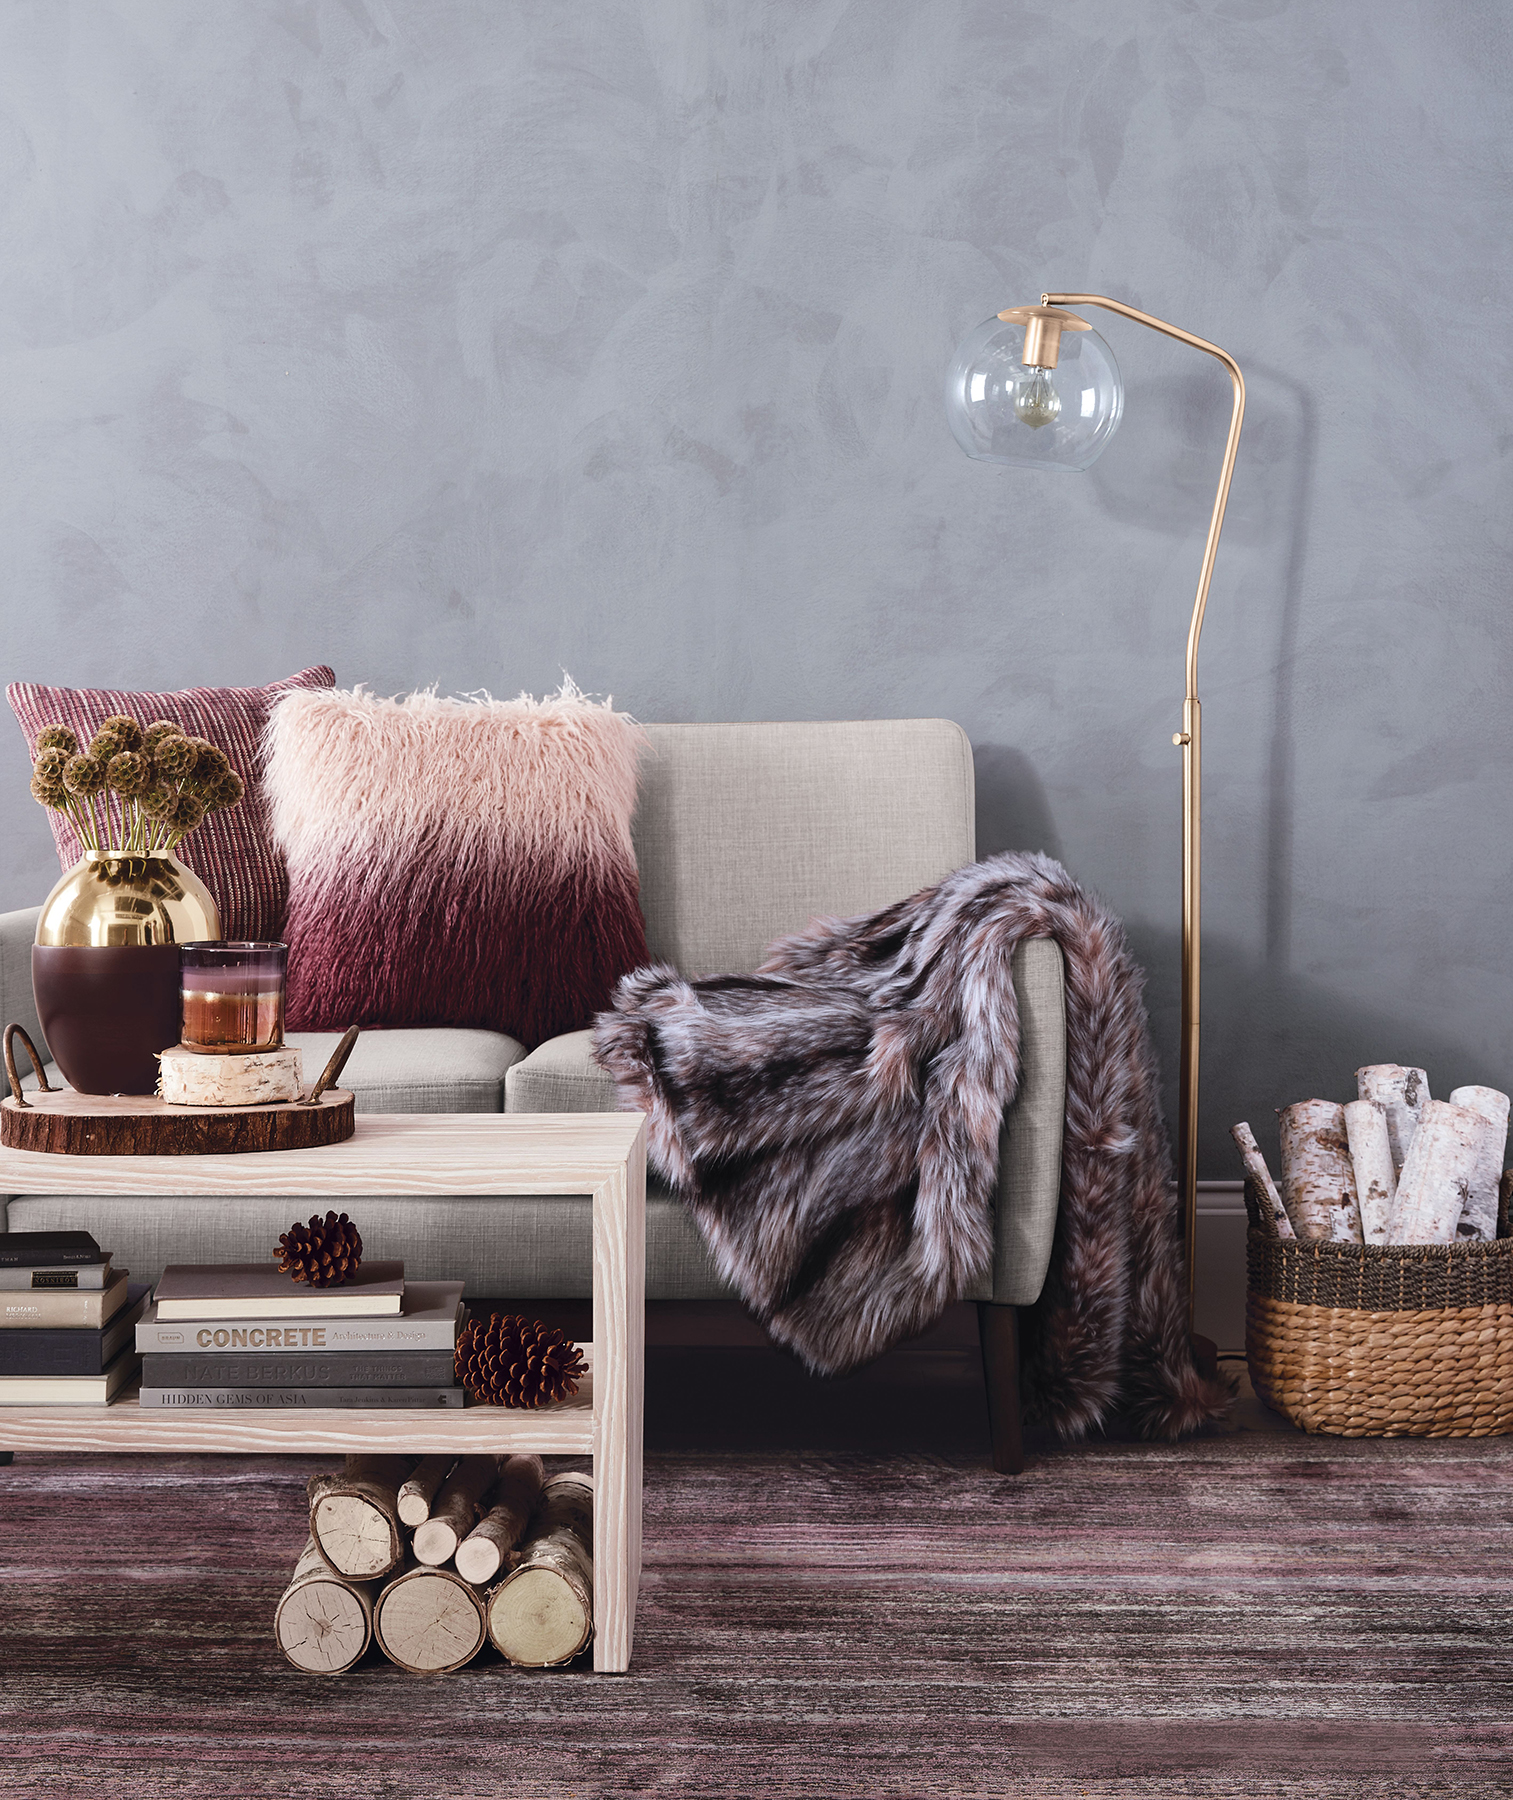 Room with purples pinks and blues, pillows and throws